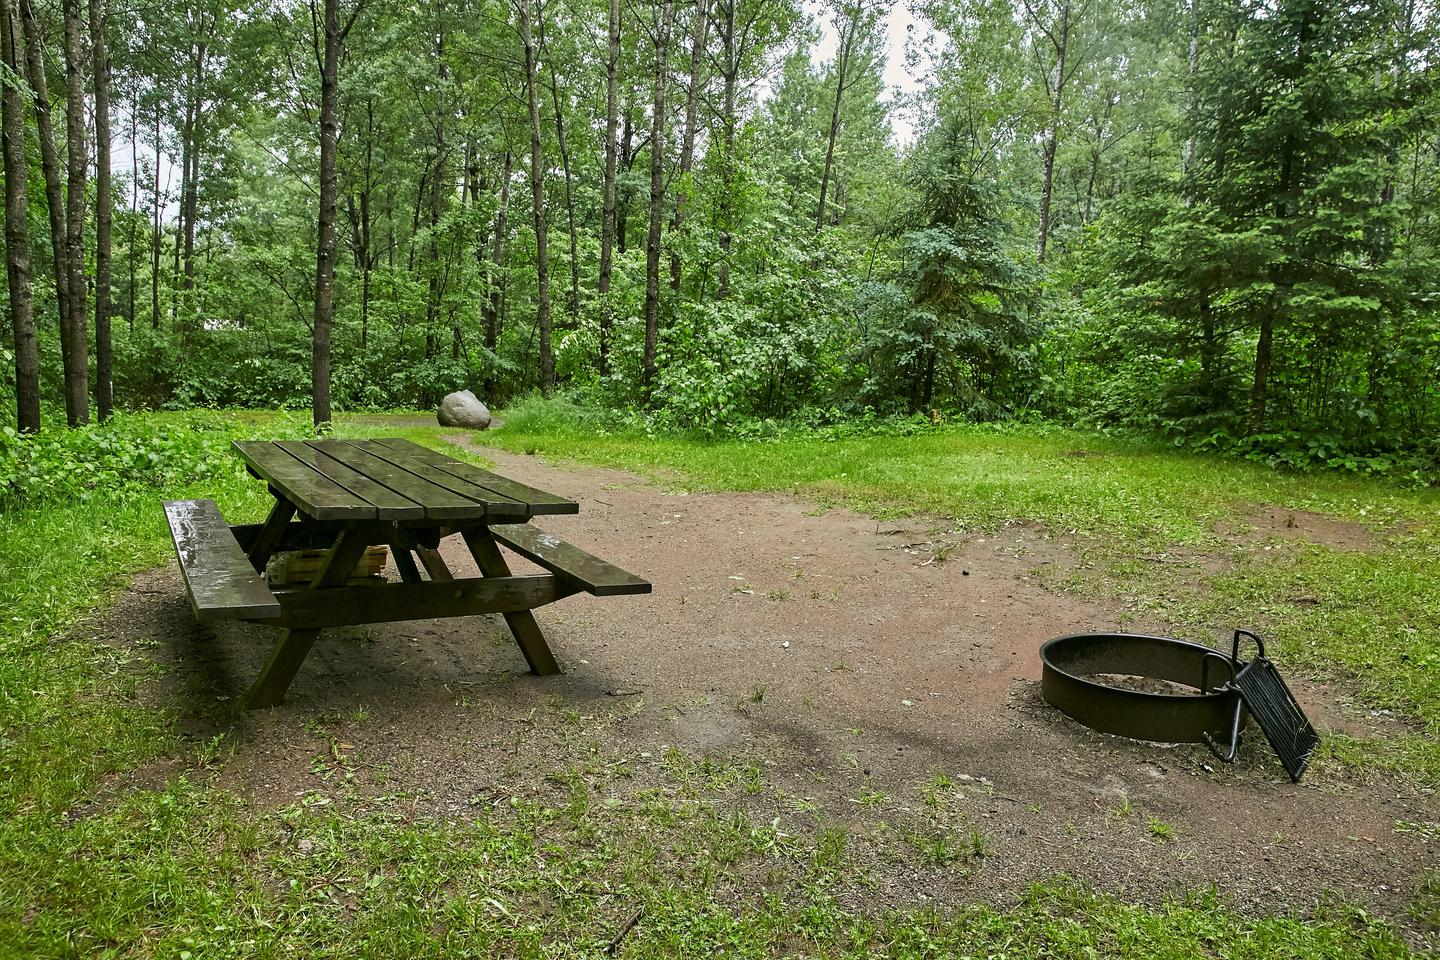 Picnic TablePicnic able